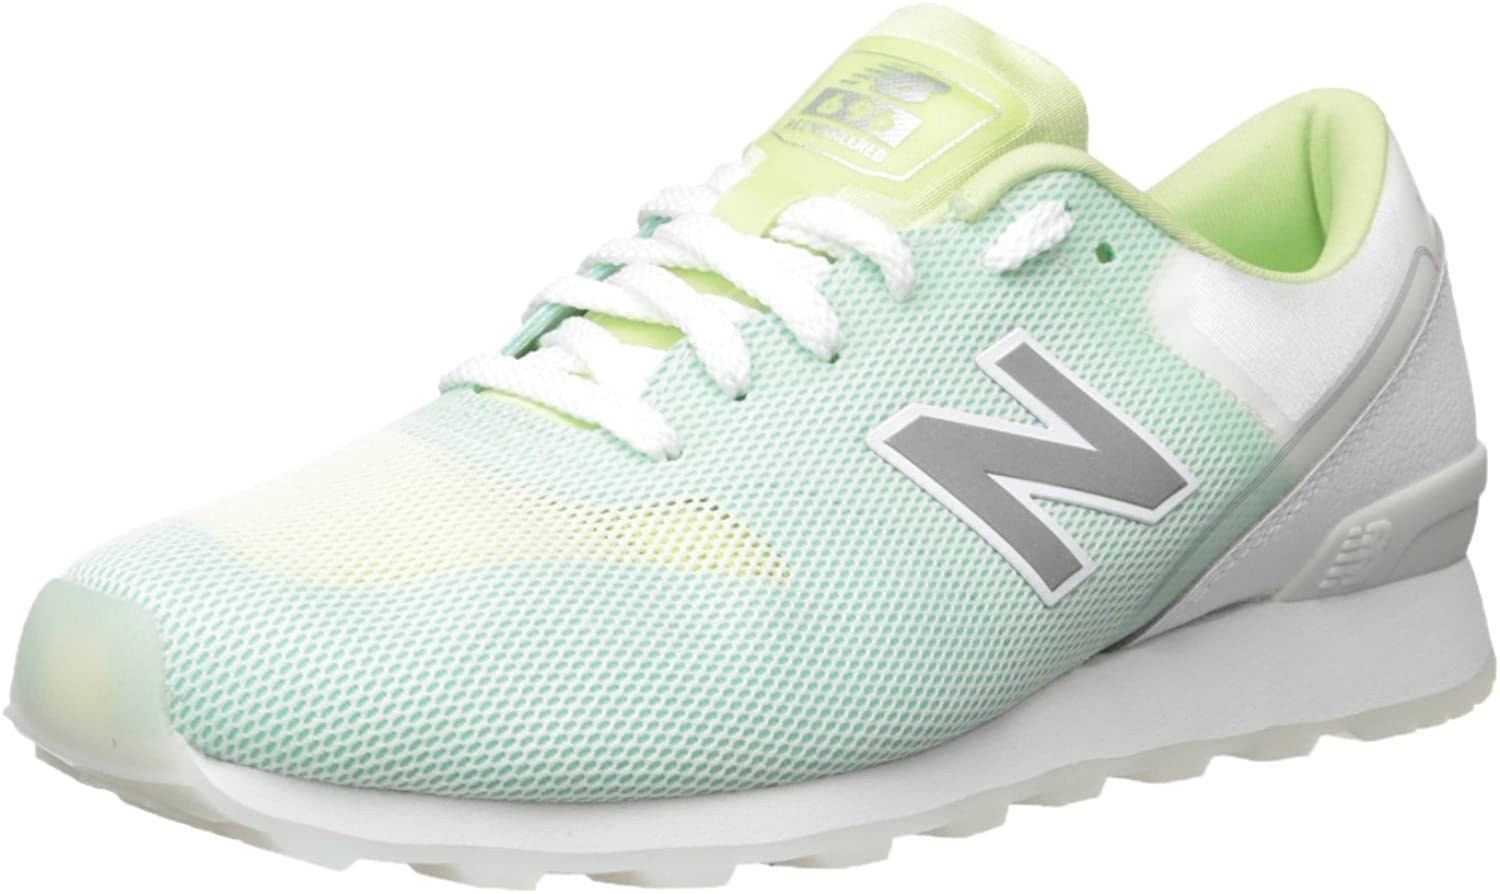 New Balance Women's 696 Re-Engineered Lifestyle Fashion Sneaker